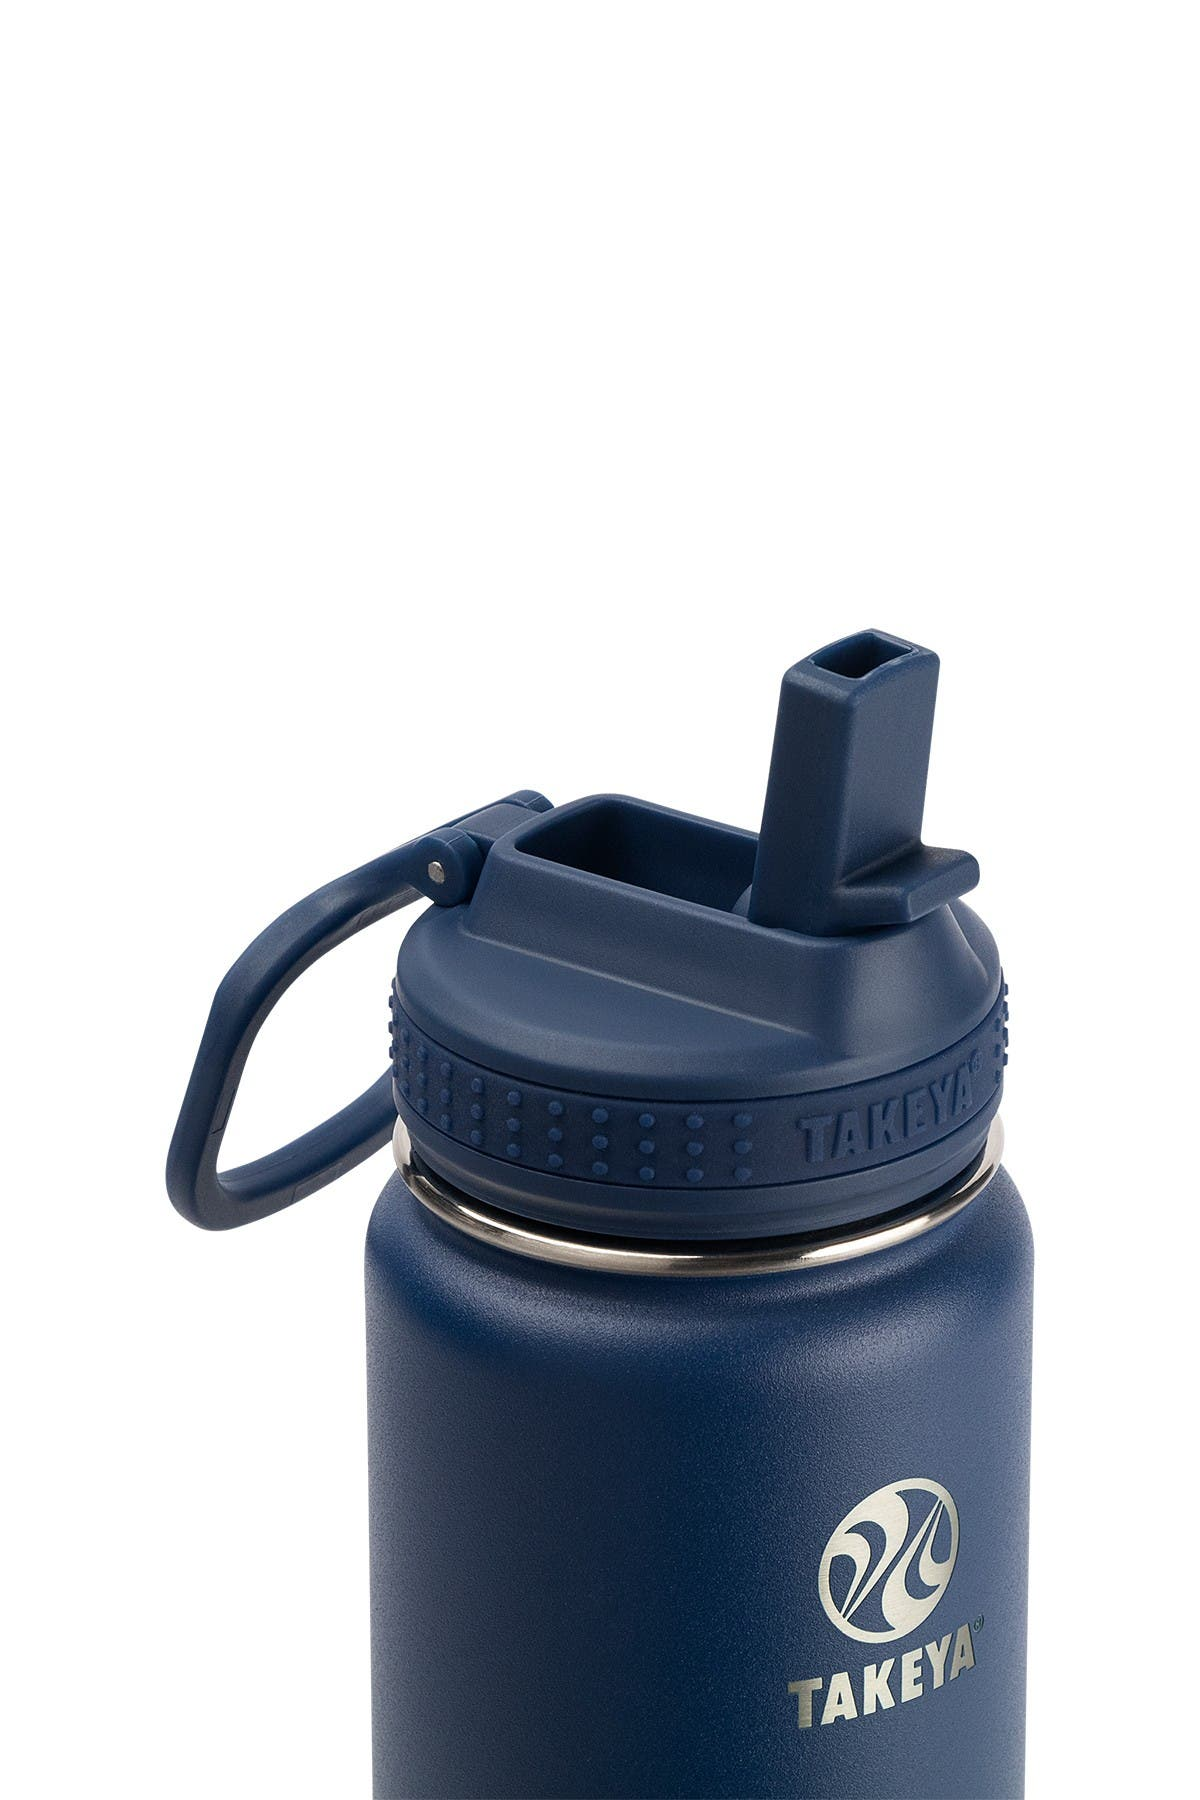 Image of Takeya Actives Insulated 22 oz. Stainless Steel Bottle with Straw Lid - Midnight